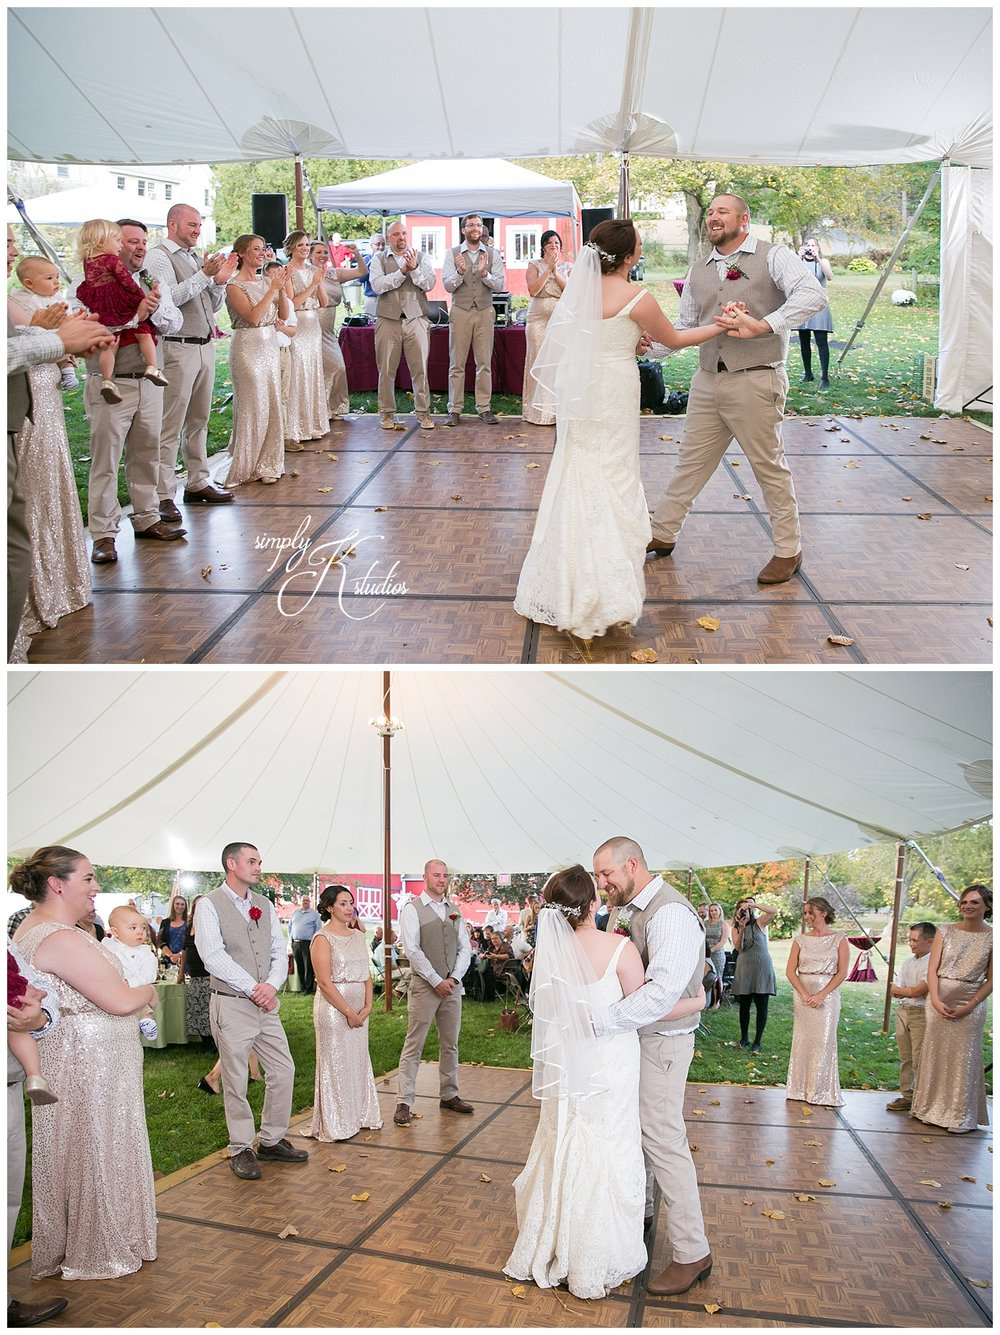 First Dance Photos at Vitos on the Farm.jpg